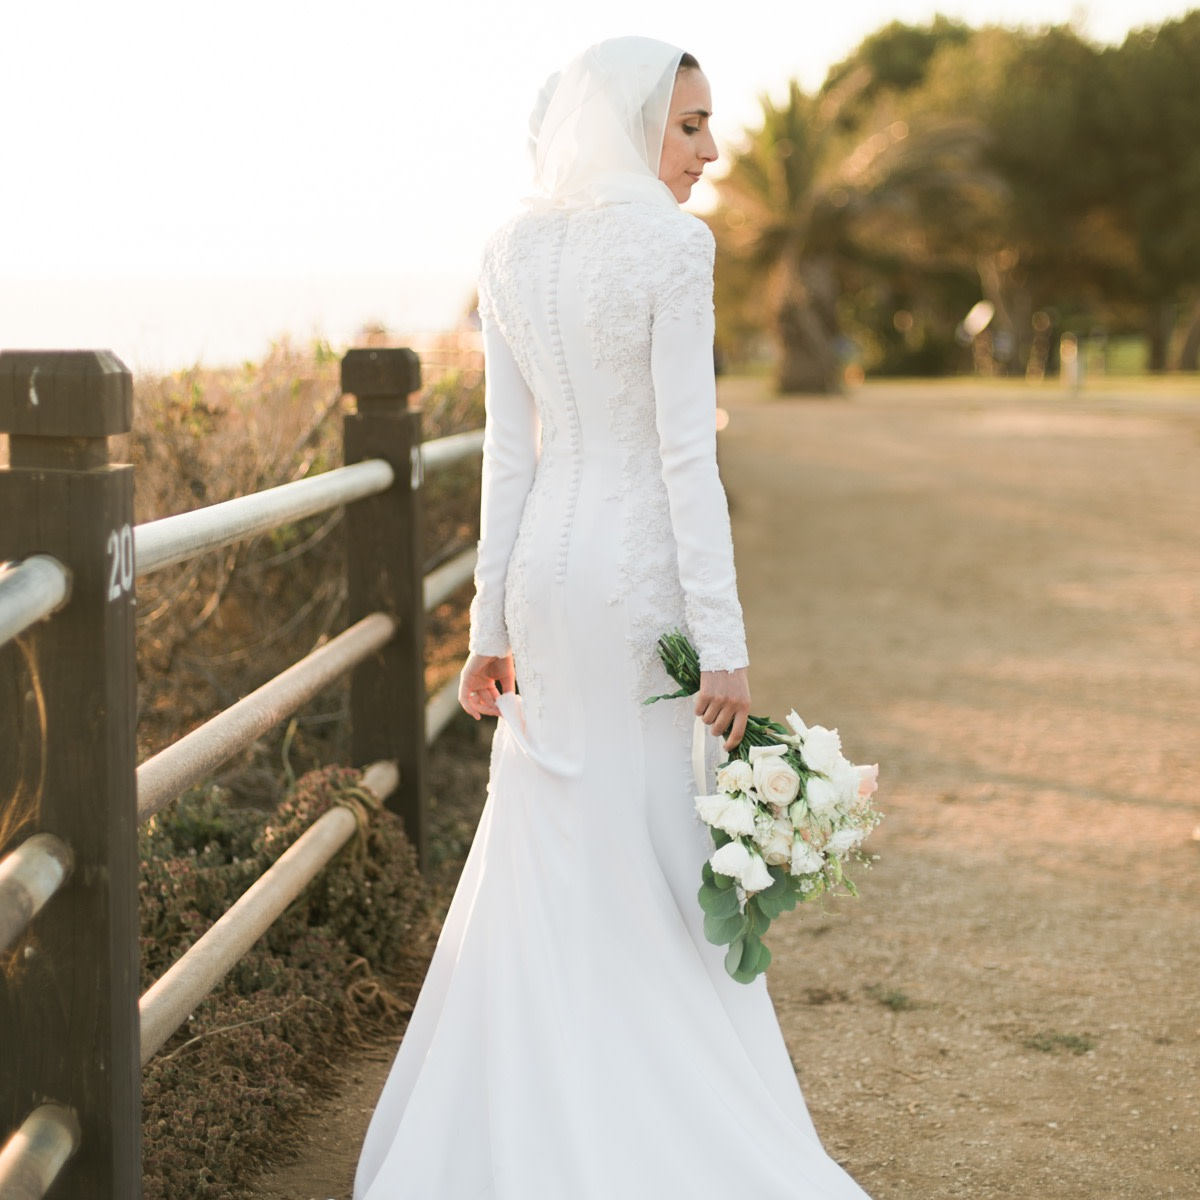 Hana wears her custom-designed Anomalie wedding dress. Photo: Julia Lexx Photography